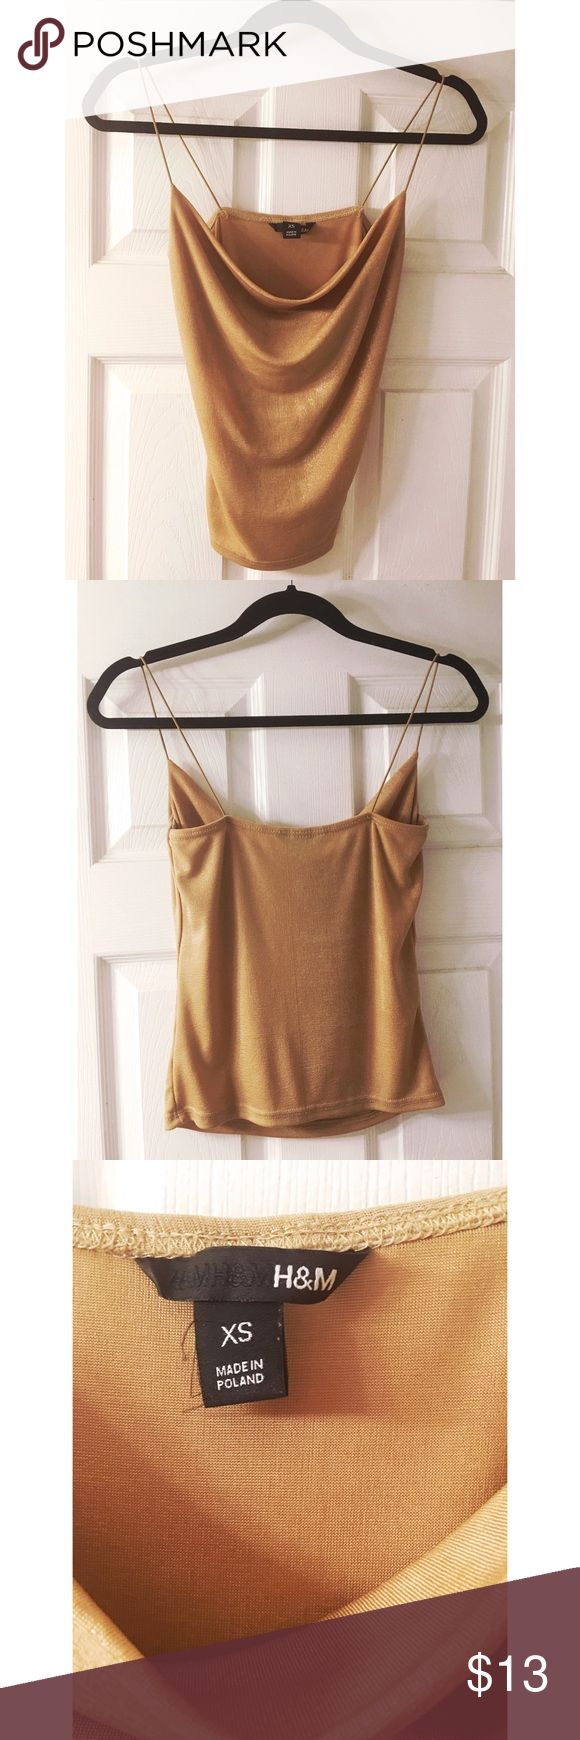 Shimmering Gold Cowl Neck H&M Top -Brand: H&M -Size: XS (super stretchy) -Color: Shimmery Gold -Condition: Excellent -Cheaper on Ⓜ️ -Deeper discounts when you bundle   Tags: Free People Top Shop Aeropostale Anthropologie H&M Forever 21 Fashion Nova American Apparel Urban Outfitters Pacsun Tillys Missguided Billabong American Eagle Hollister Abercrombie Aldo Nasty Gal Hot Topic Yandy Beach Bunny Victorias Secret Boohoo Asos Unif F21 Cosabella Bebe Zara Balmain Fashion Nova Steve Madden Sam…